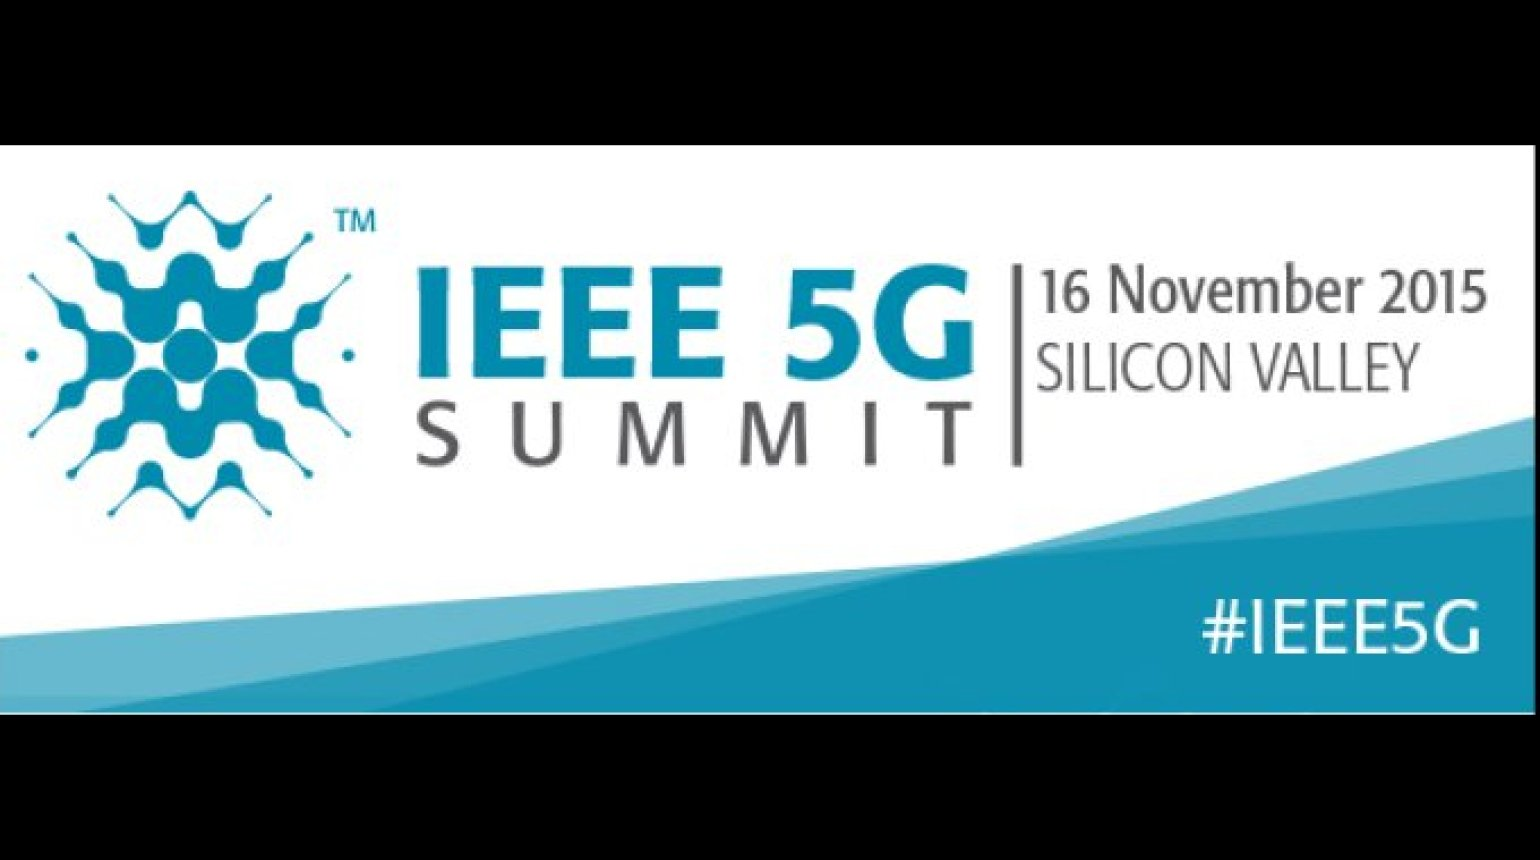 5G Summit: Silicon Valley